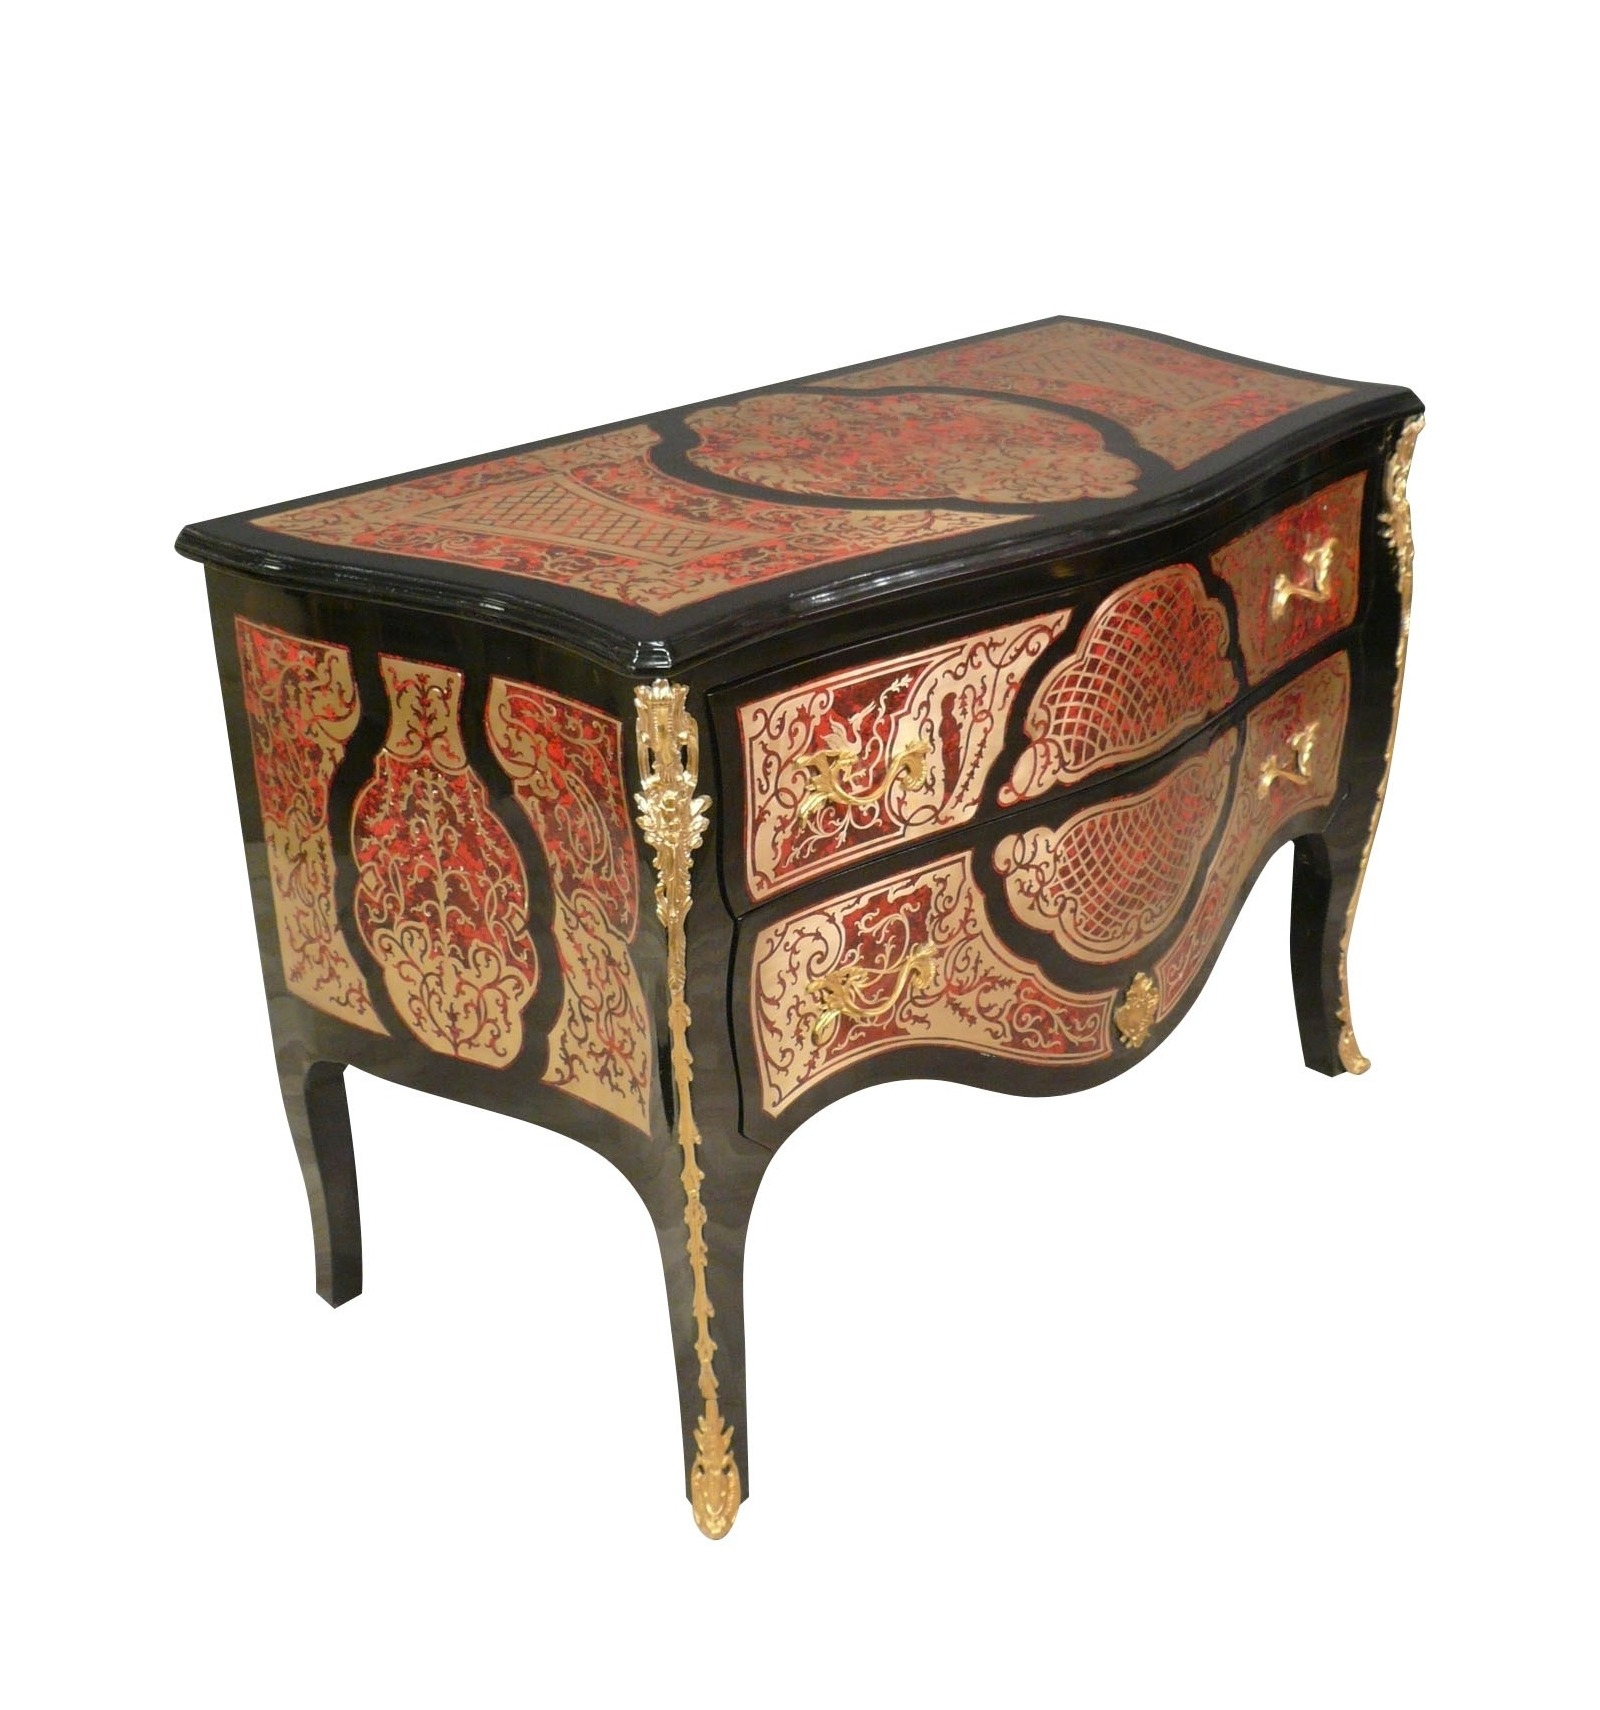 Louis Xv Commode In Marquetry Boulle Style Furniture